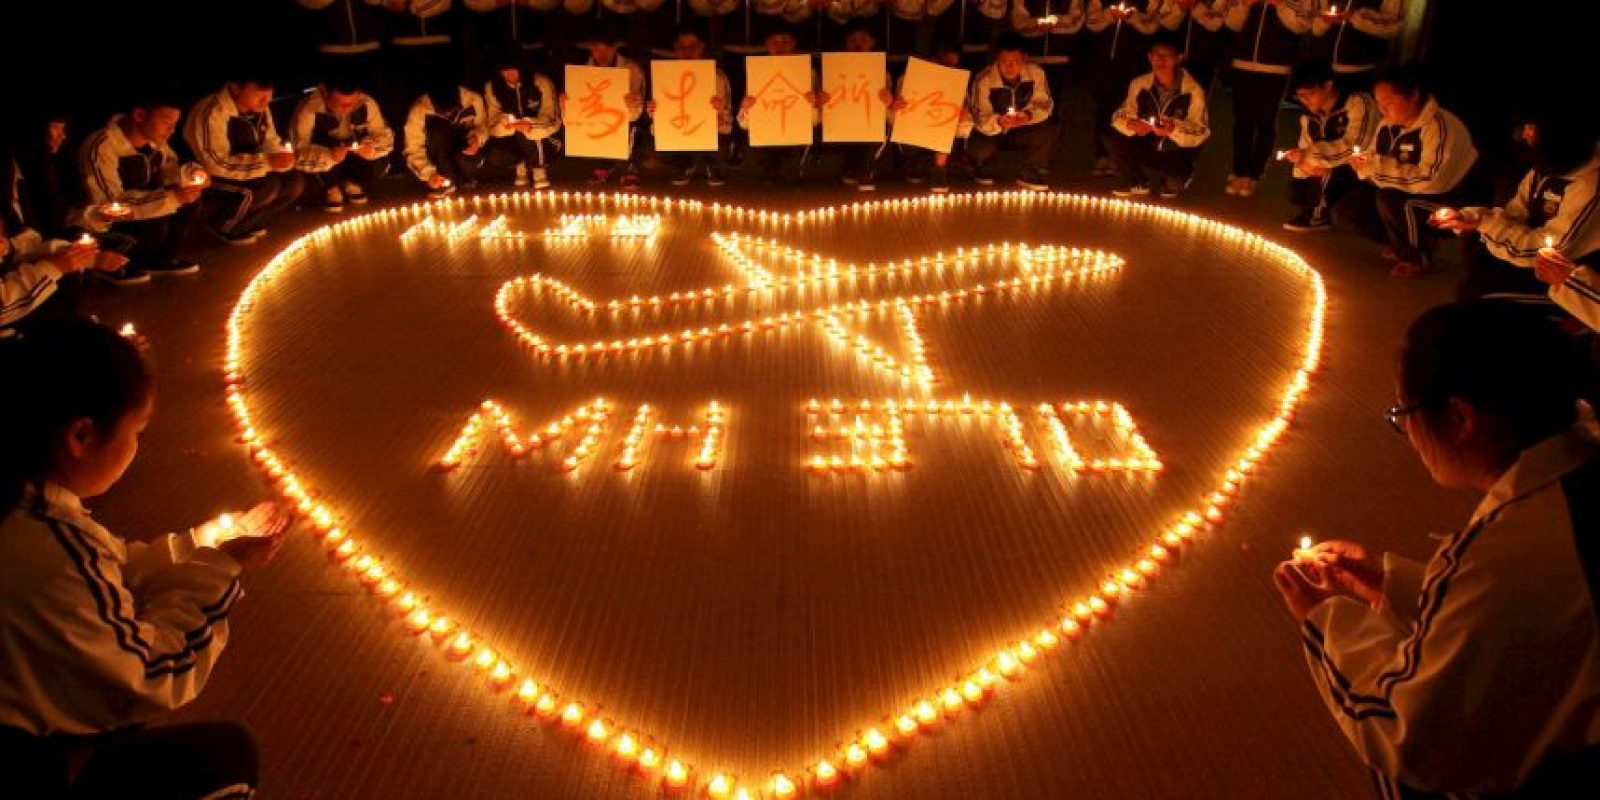 1. MH730 Foto:Getty Images